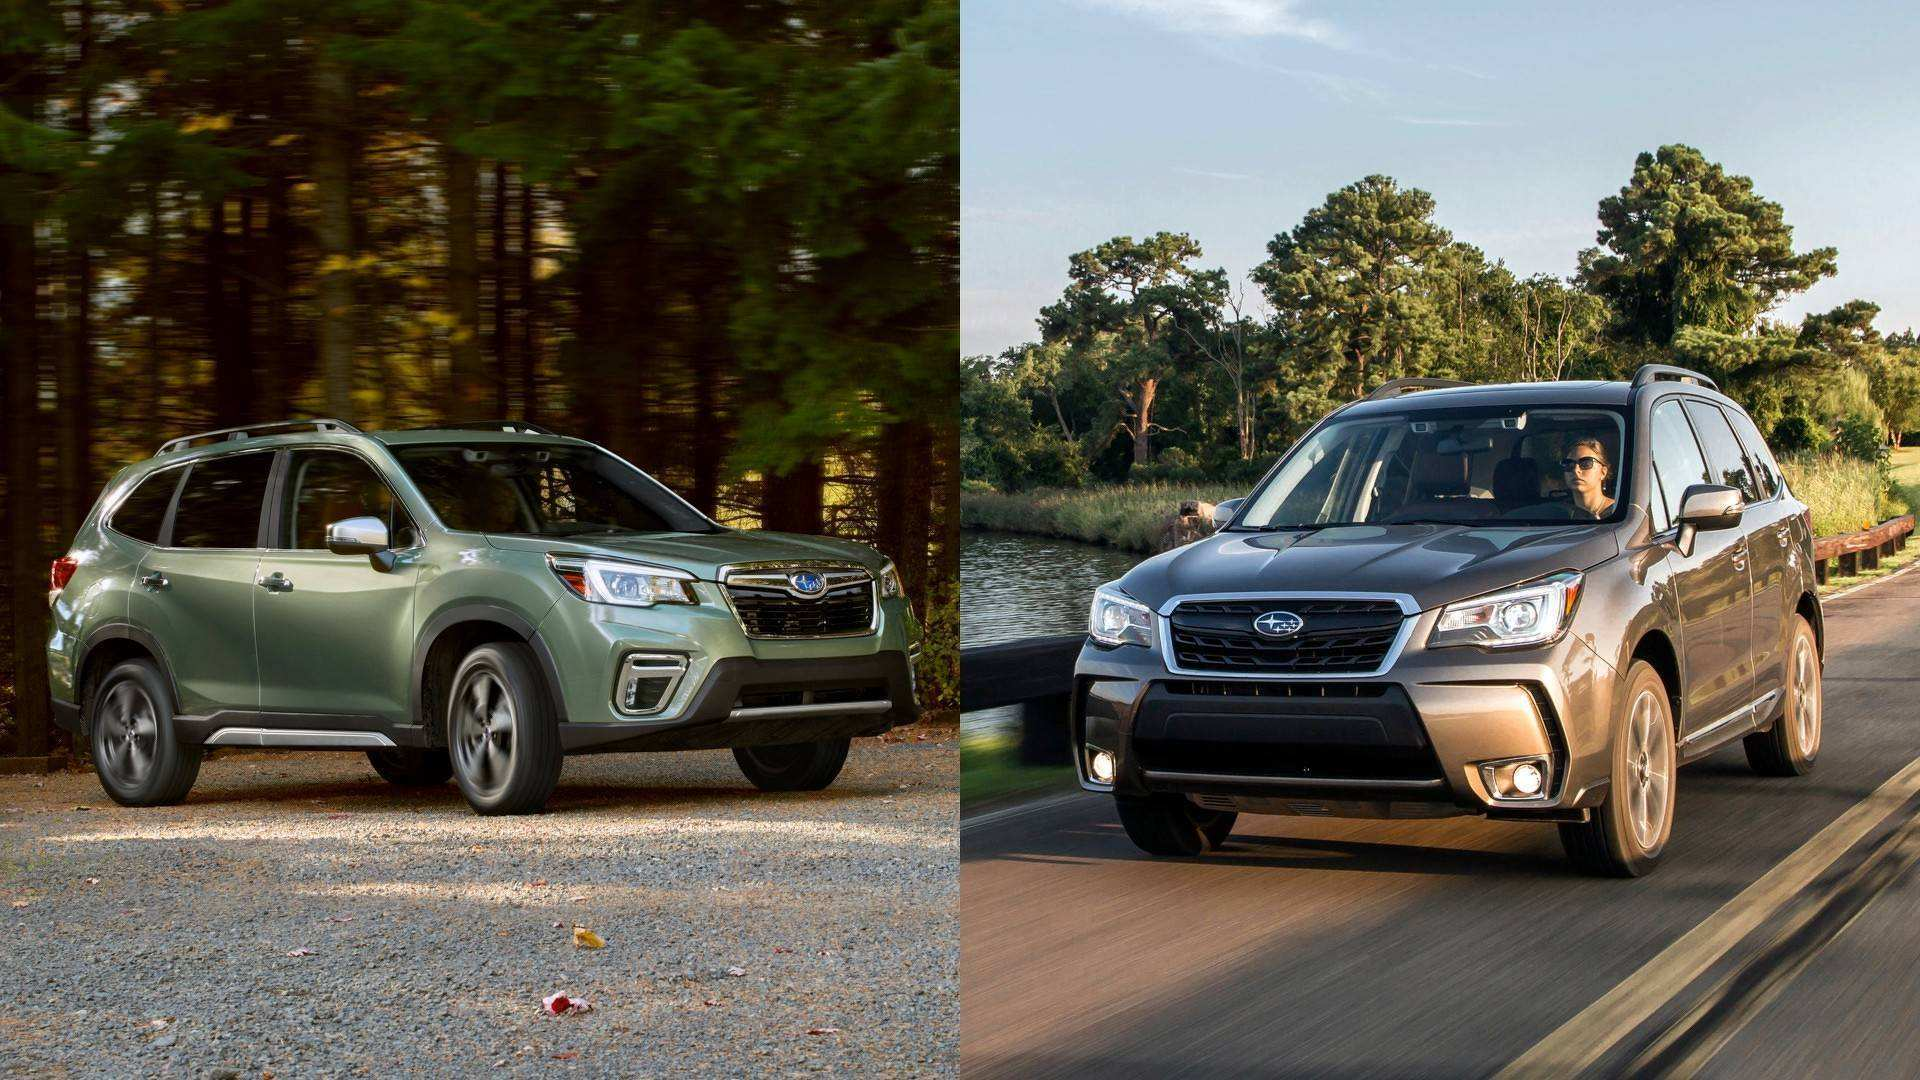 62 Great 2018 Vs 2020 Subaru Forester New Concept for 2018 Vs 2020 Subaru Forester